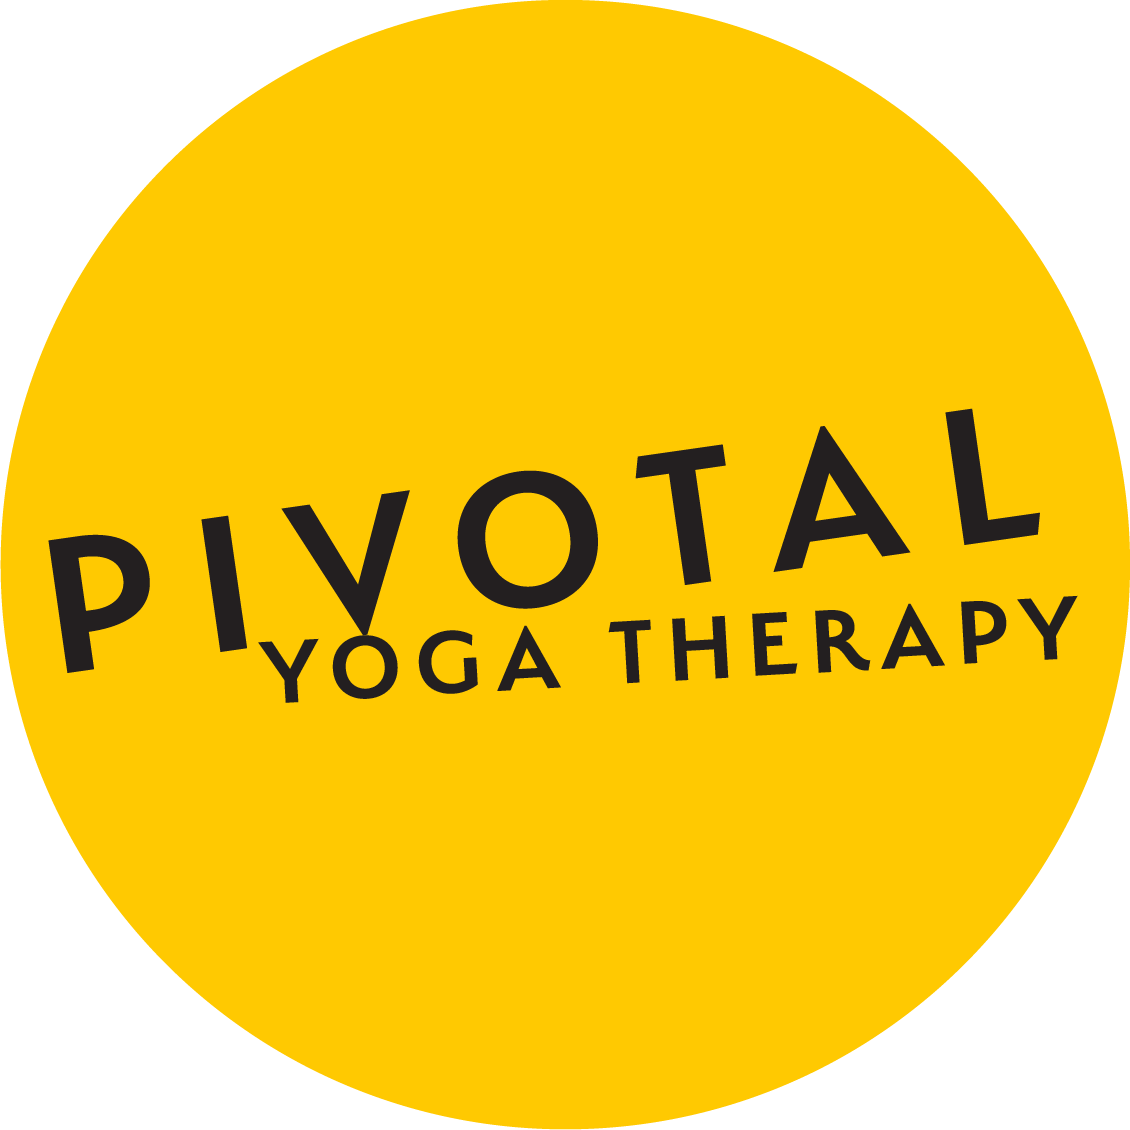 Pivotal Yoga Therapy